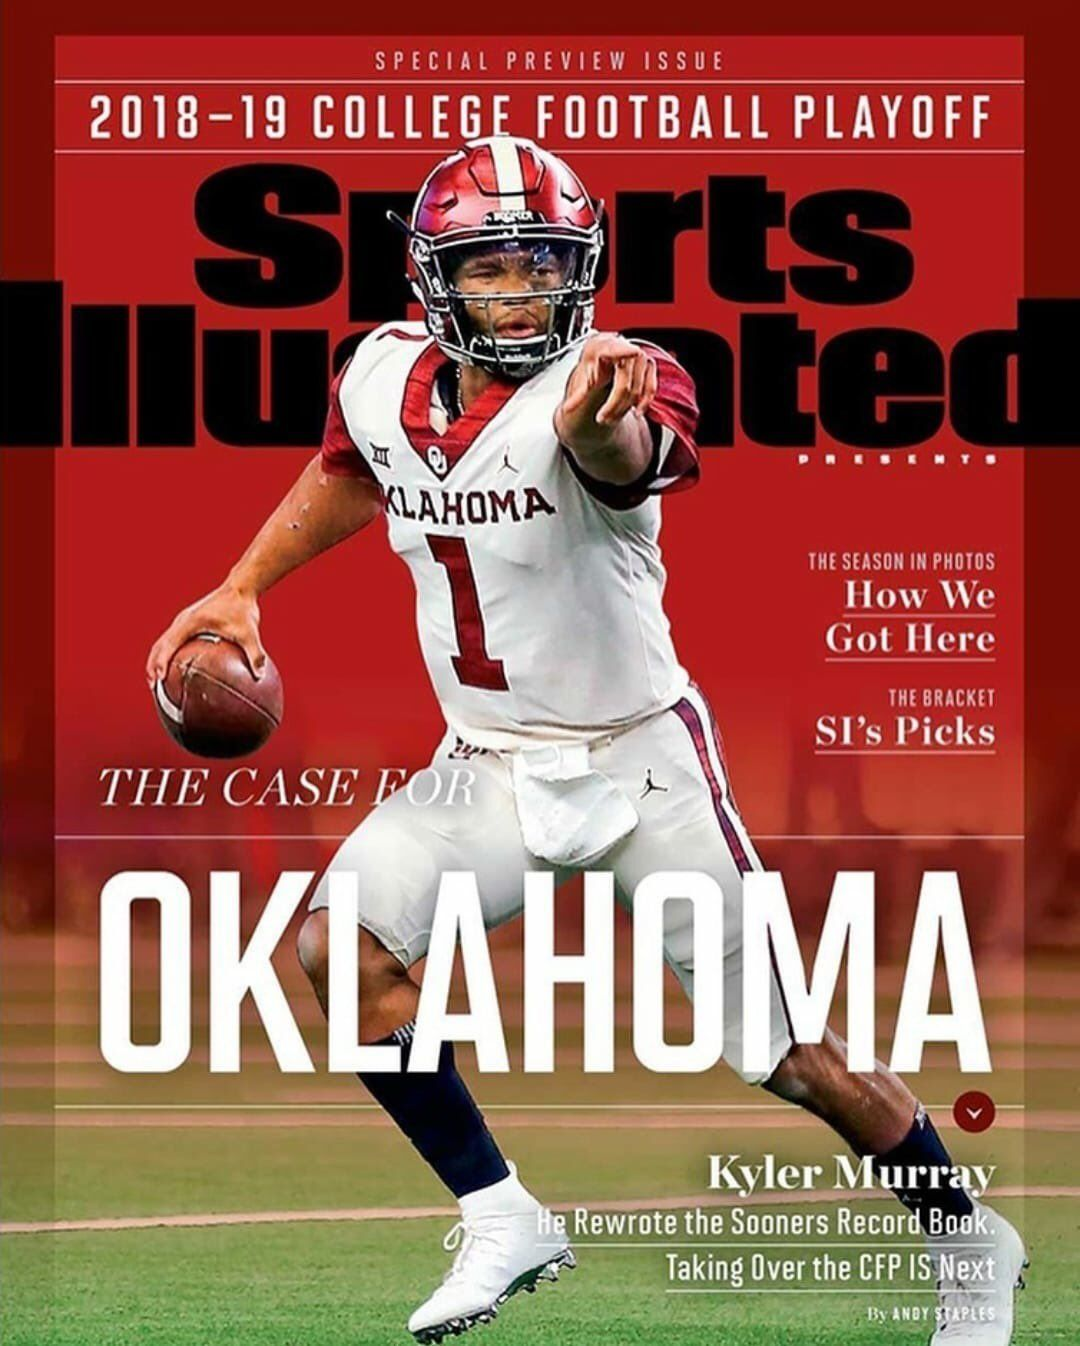 Chris Lambakis On Twitter Oklahoma Sooners Football Sports Illustrated Covers College Football Playoff